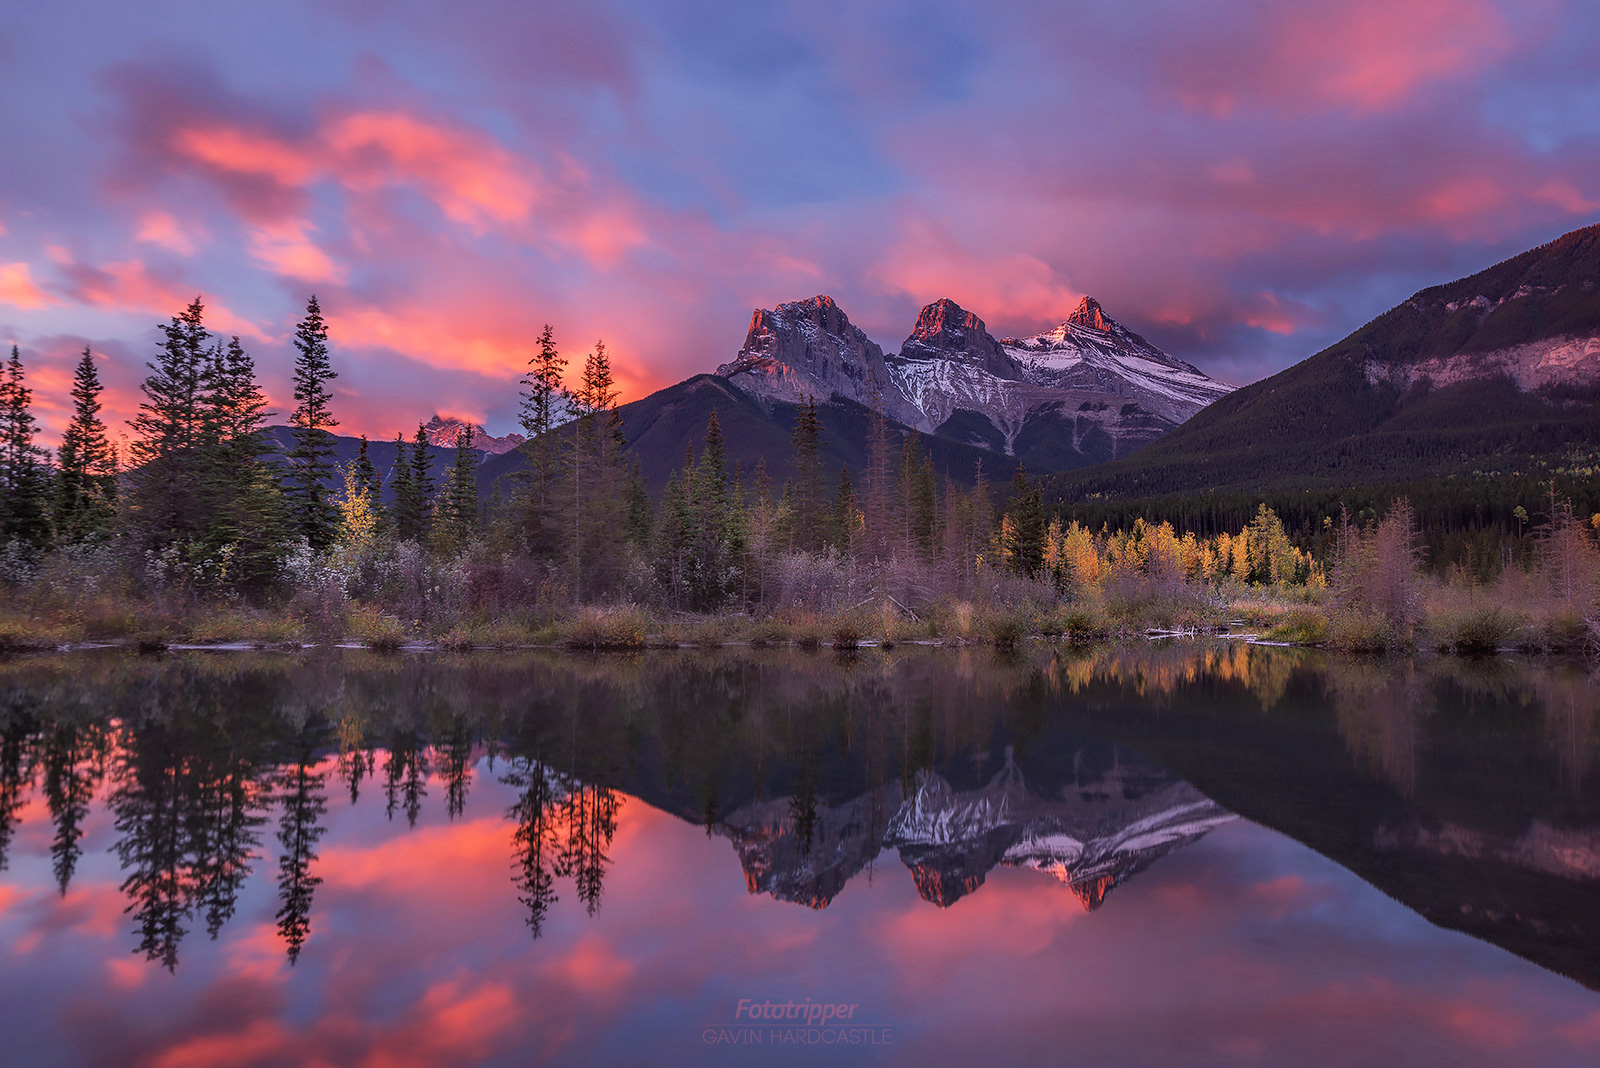 Photography workshops in Banff - Sisters on Fire